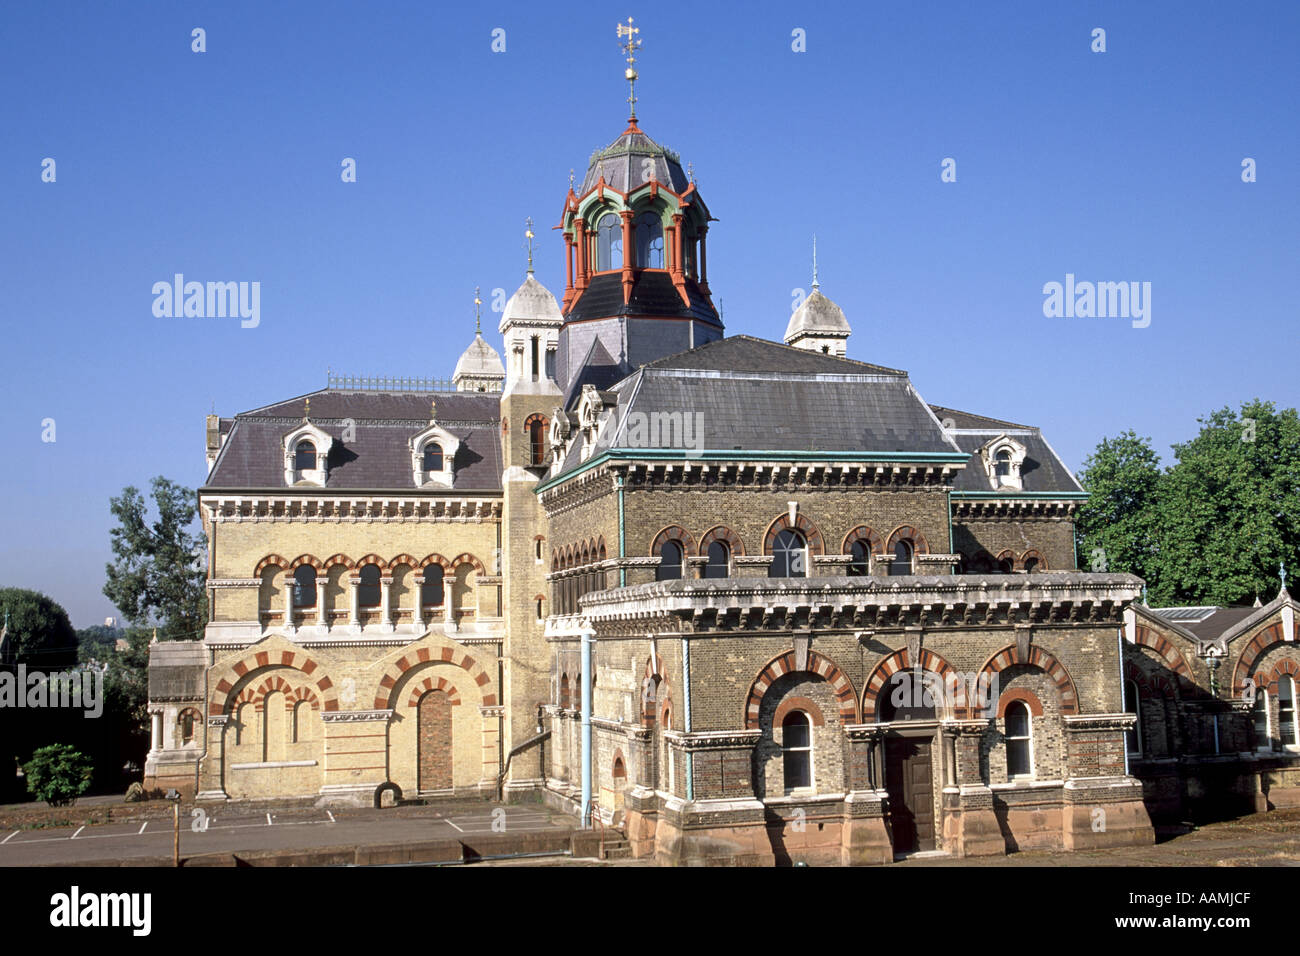 Abbey Mills, a Victorian-era sewage-pumping station in Stratford, East London. - Stock Image